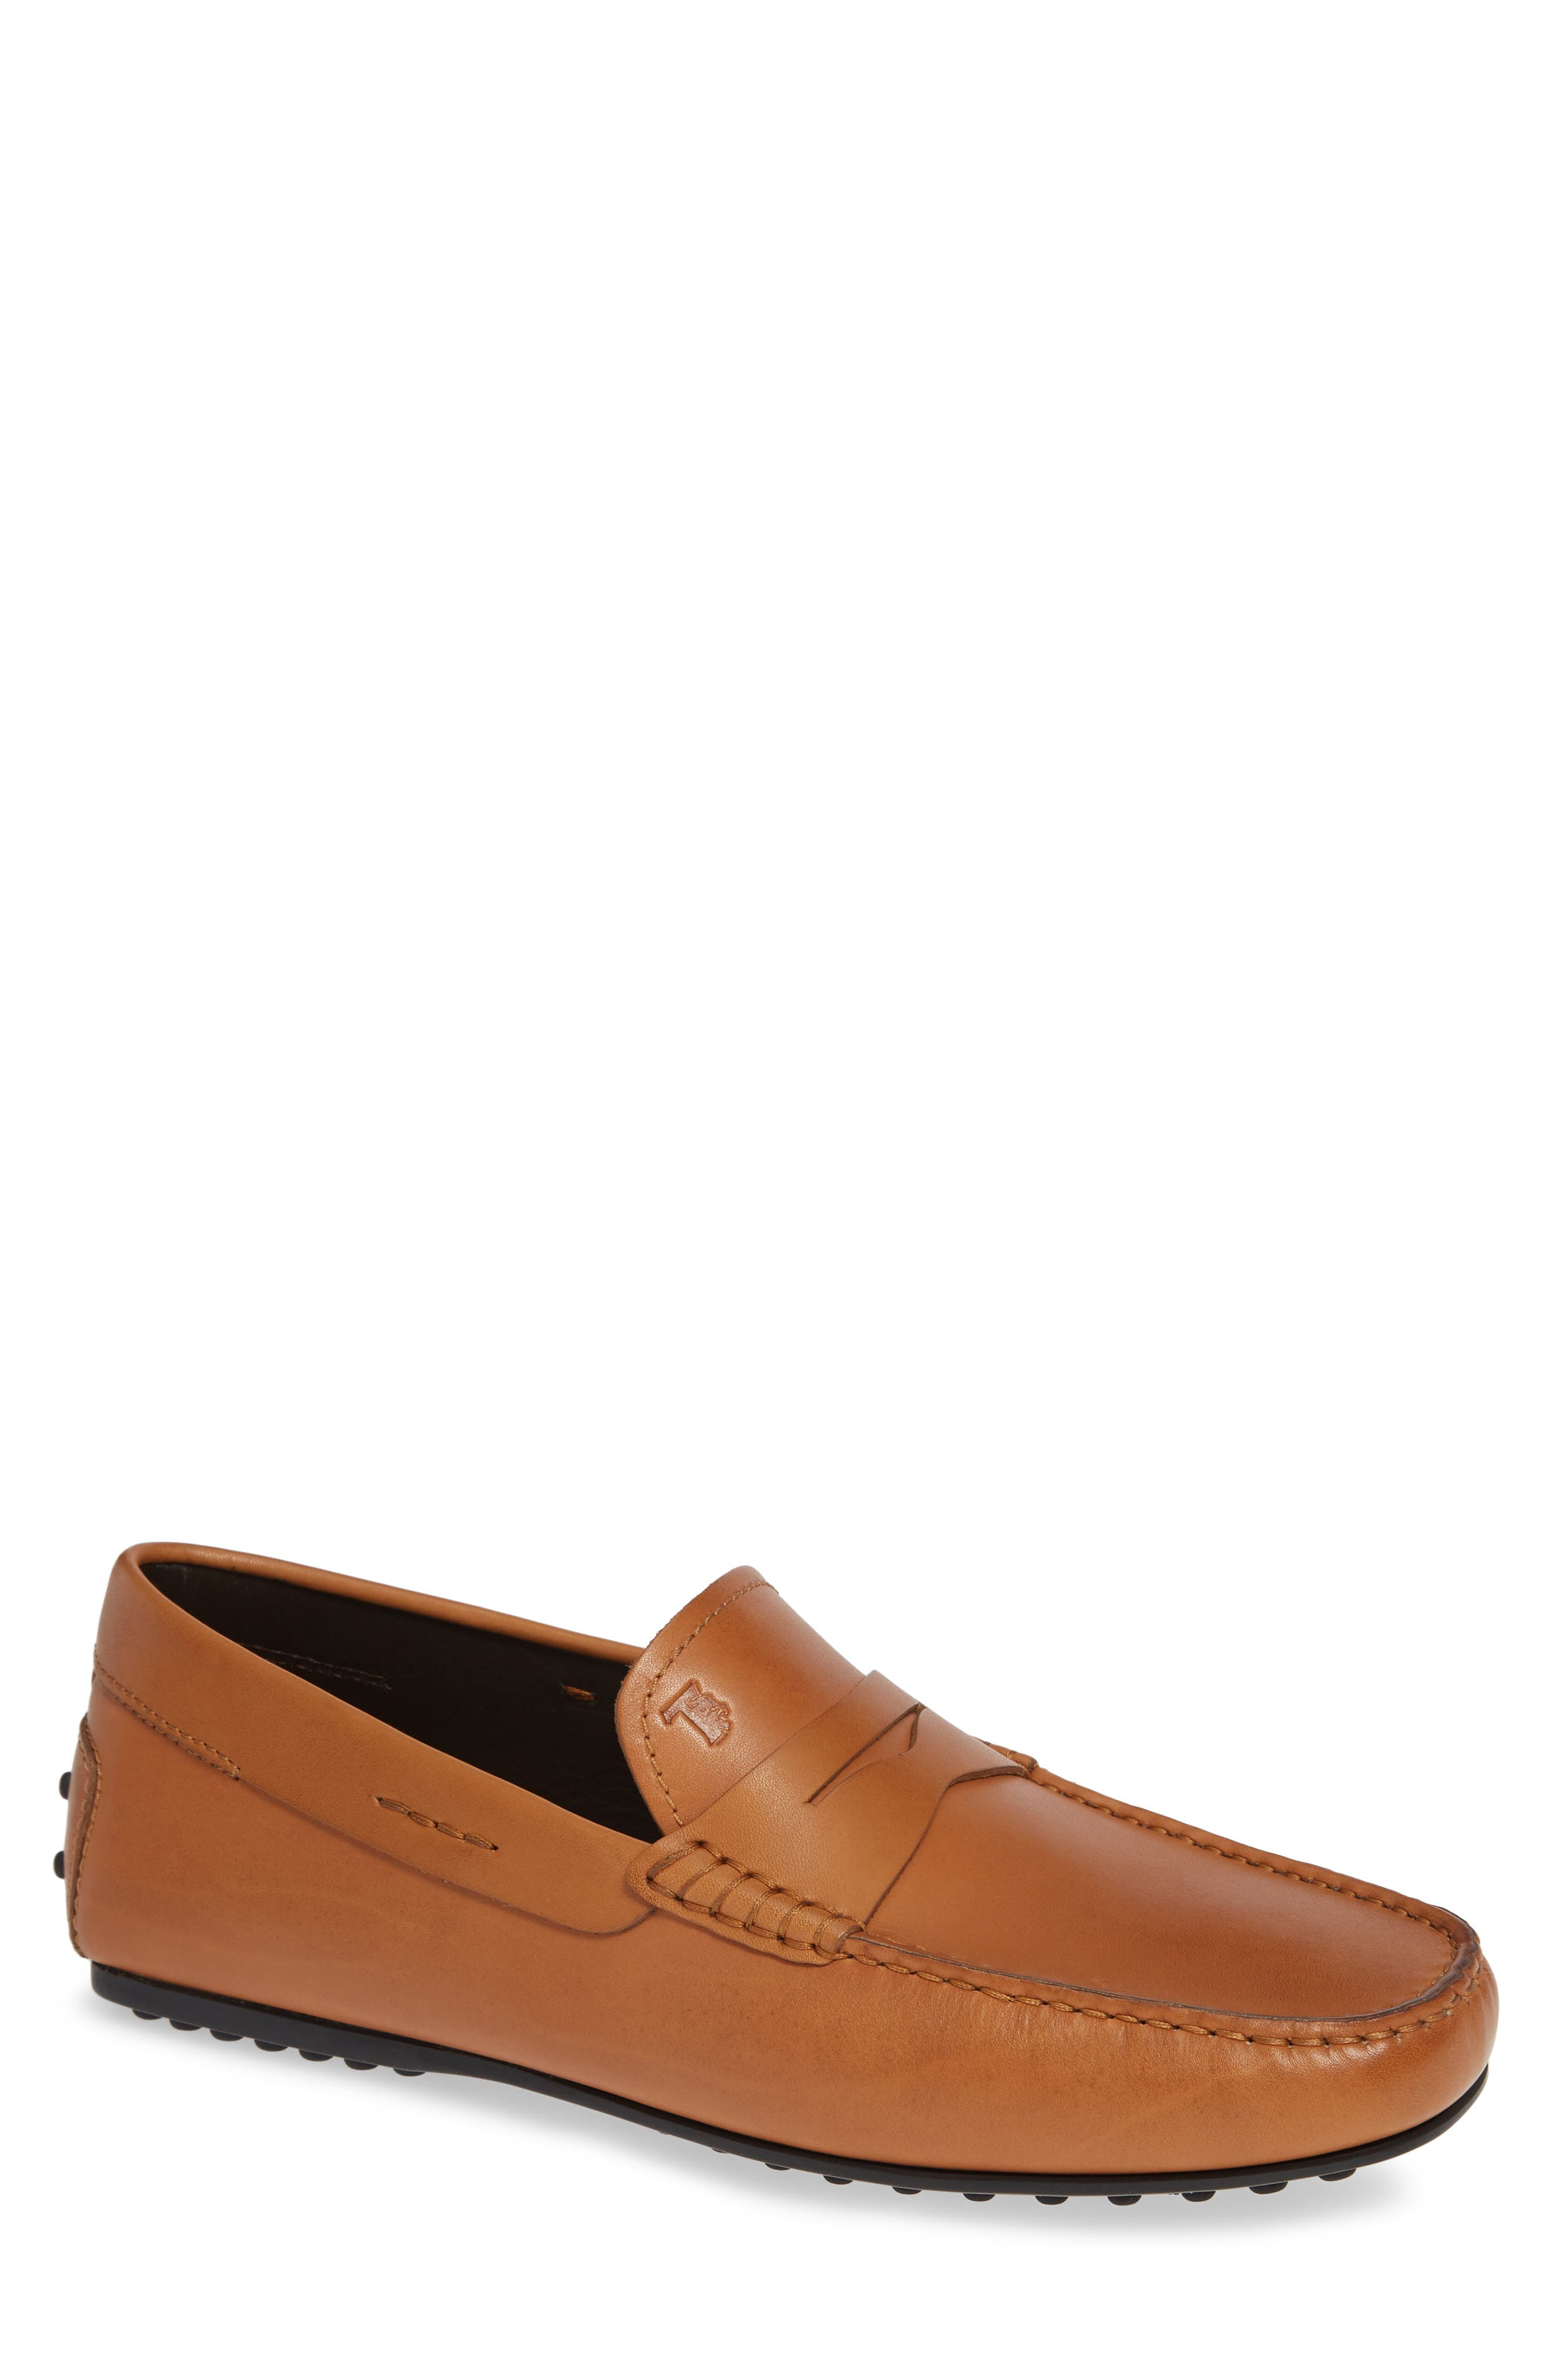 TOD'S 'City' Penny Driving Shoe, Main, color, BROWN/BROWN